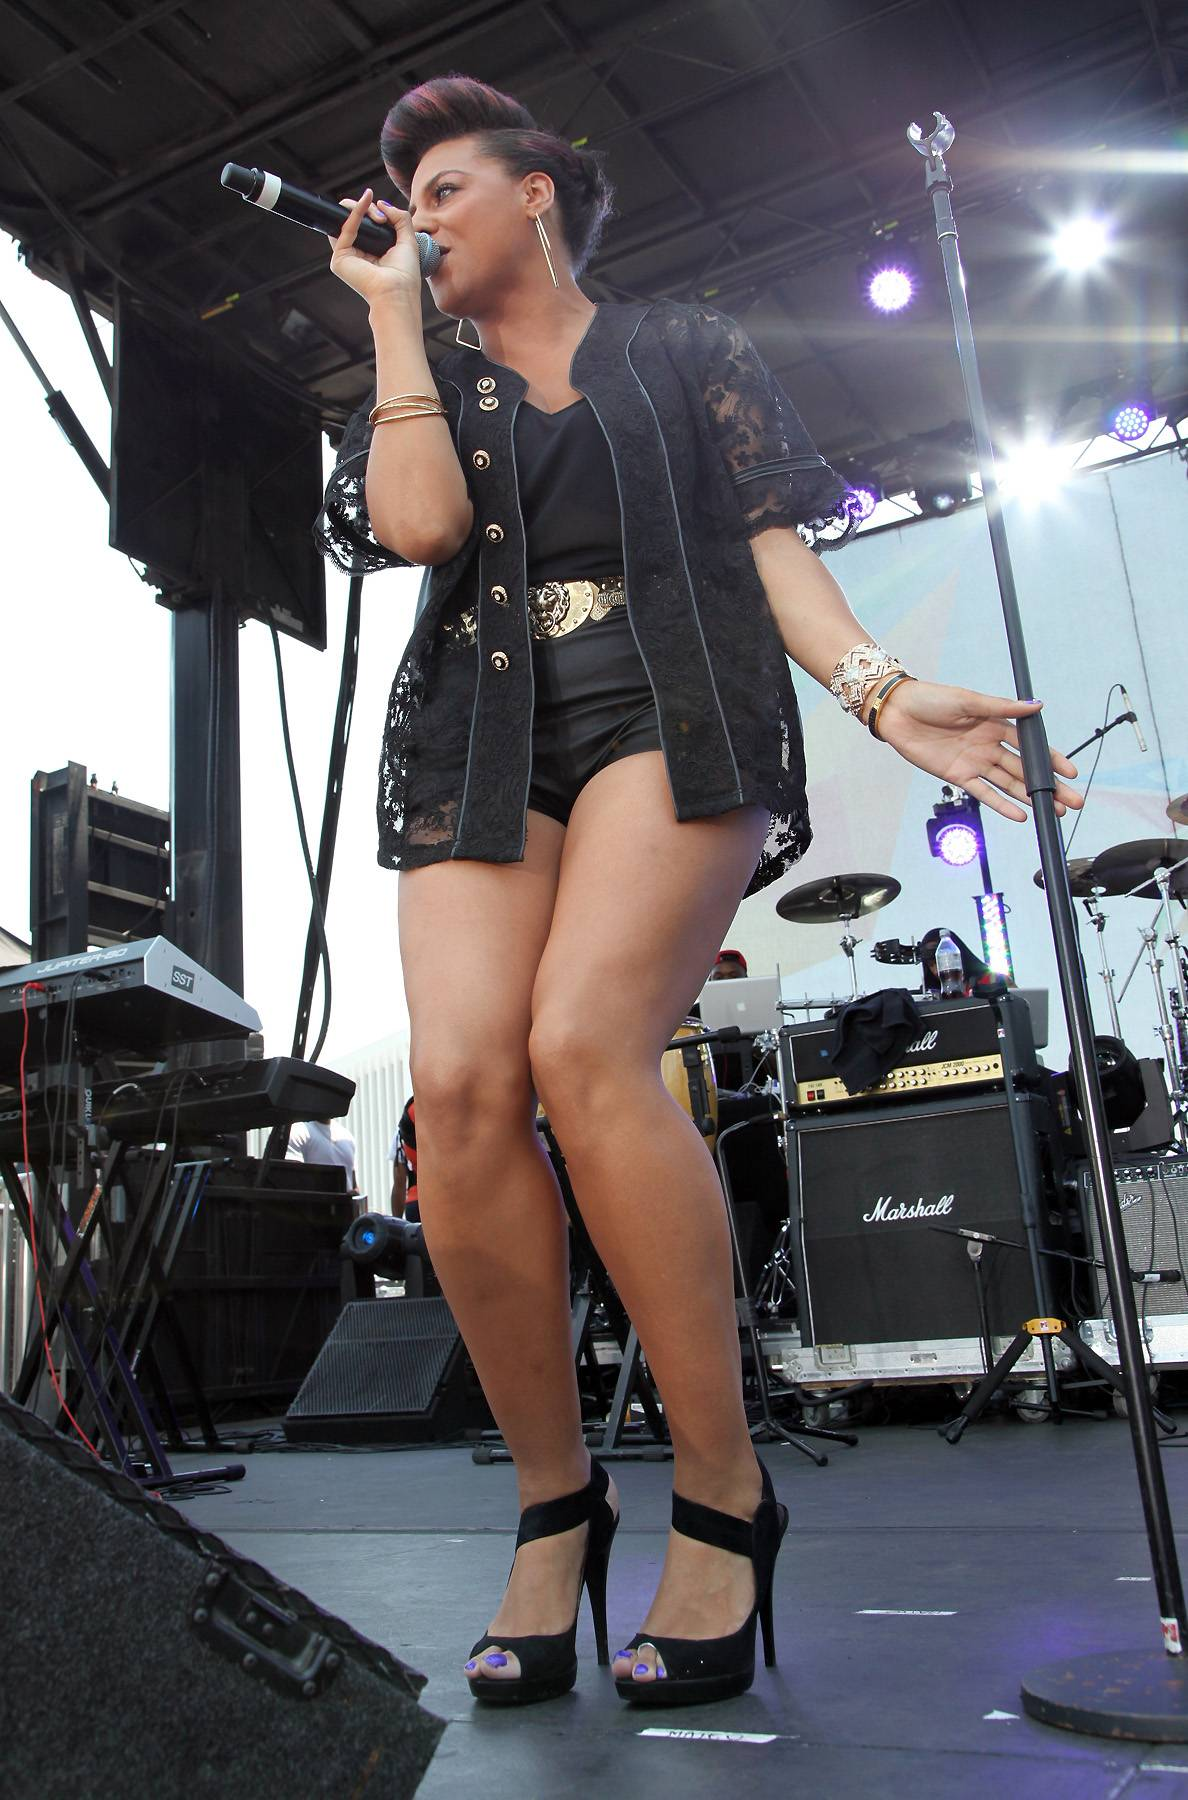 Let the Groove Fill You Up - From the momentMarsha Ambrosius steps onto the stage, she feels the music. Tip #1: Get into the groove from the minute you set foot on the stage.   (Photo: James W. Lemke/Getty Images for BET)